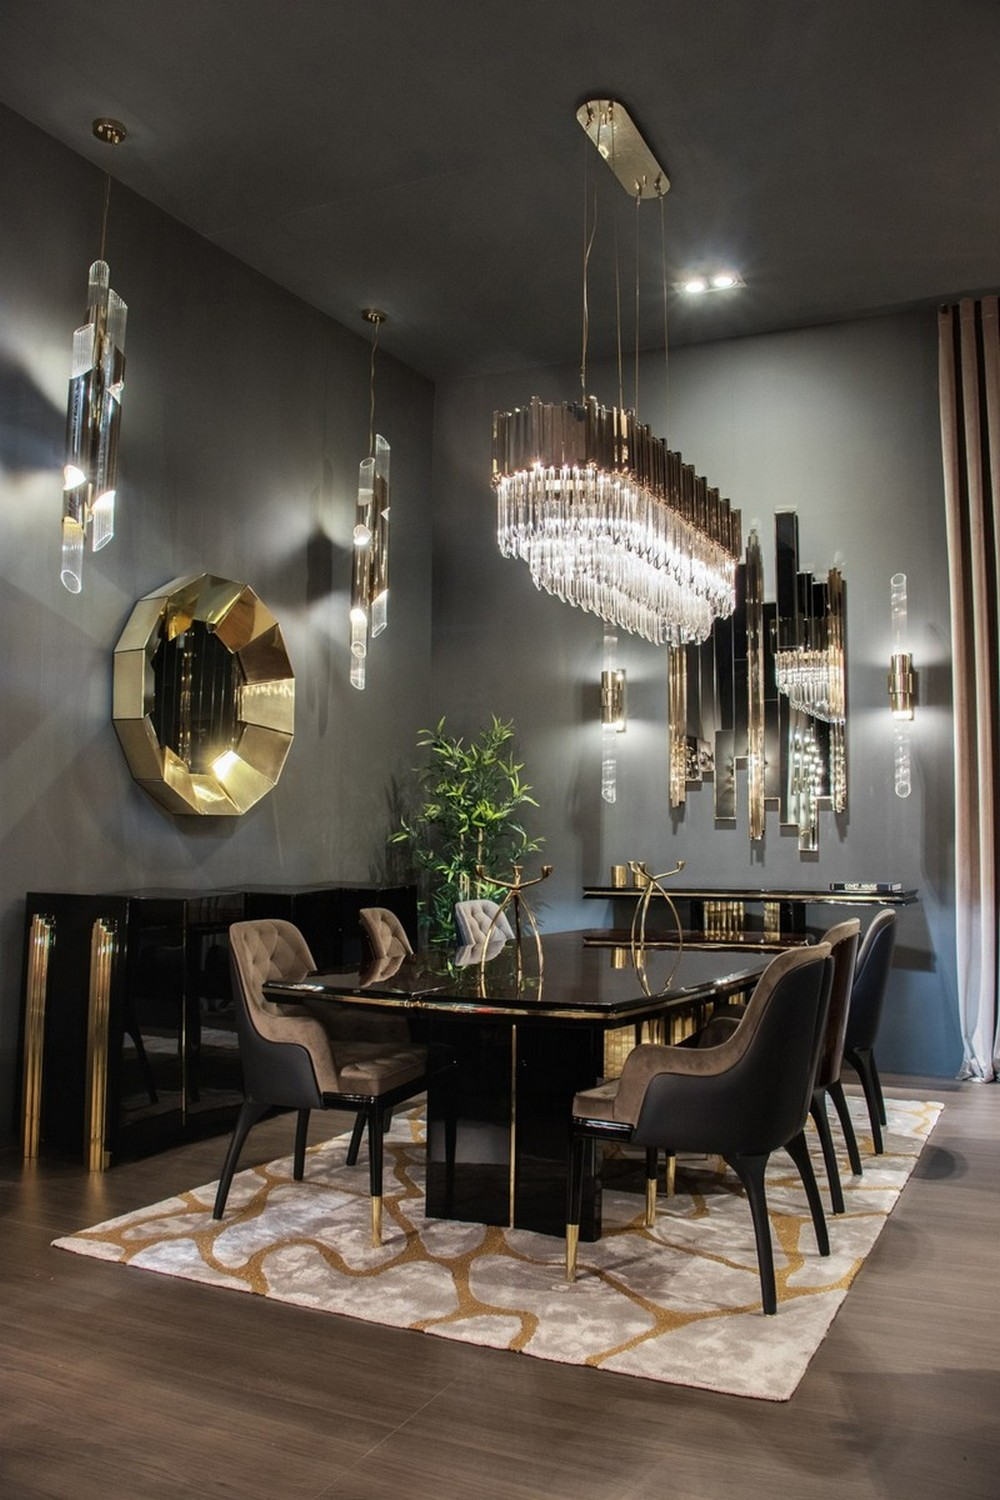 Top Luxury Design Brands You Can't Miss At Maison et Objet 2020 maison et objet Top Luxury Design Brands You Can't Miss At Maison et Objet 2020 Top Luxury Design Brands You Cant Miss At Maison et Objet 2020 7